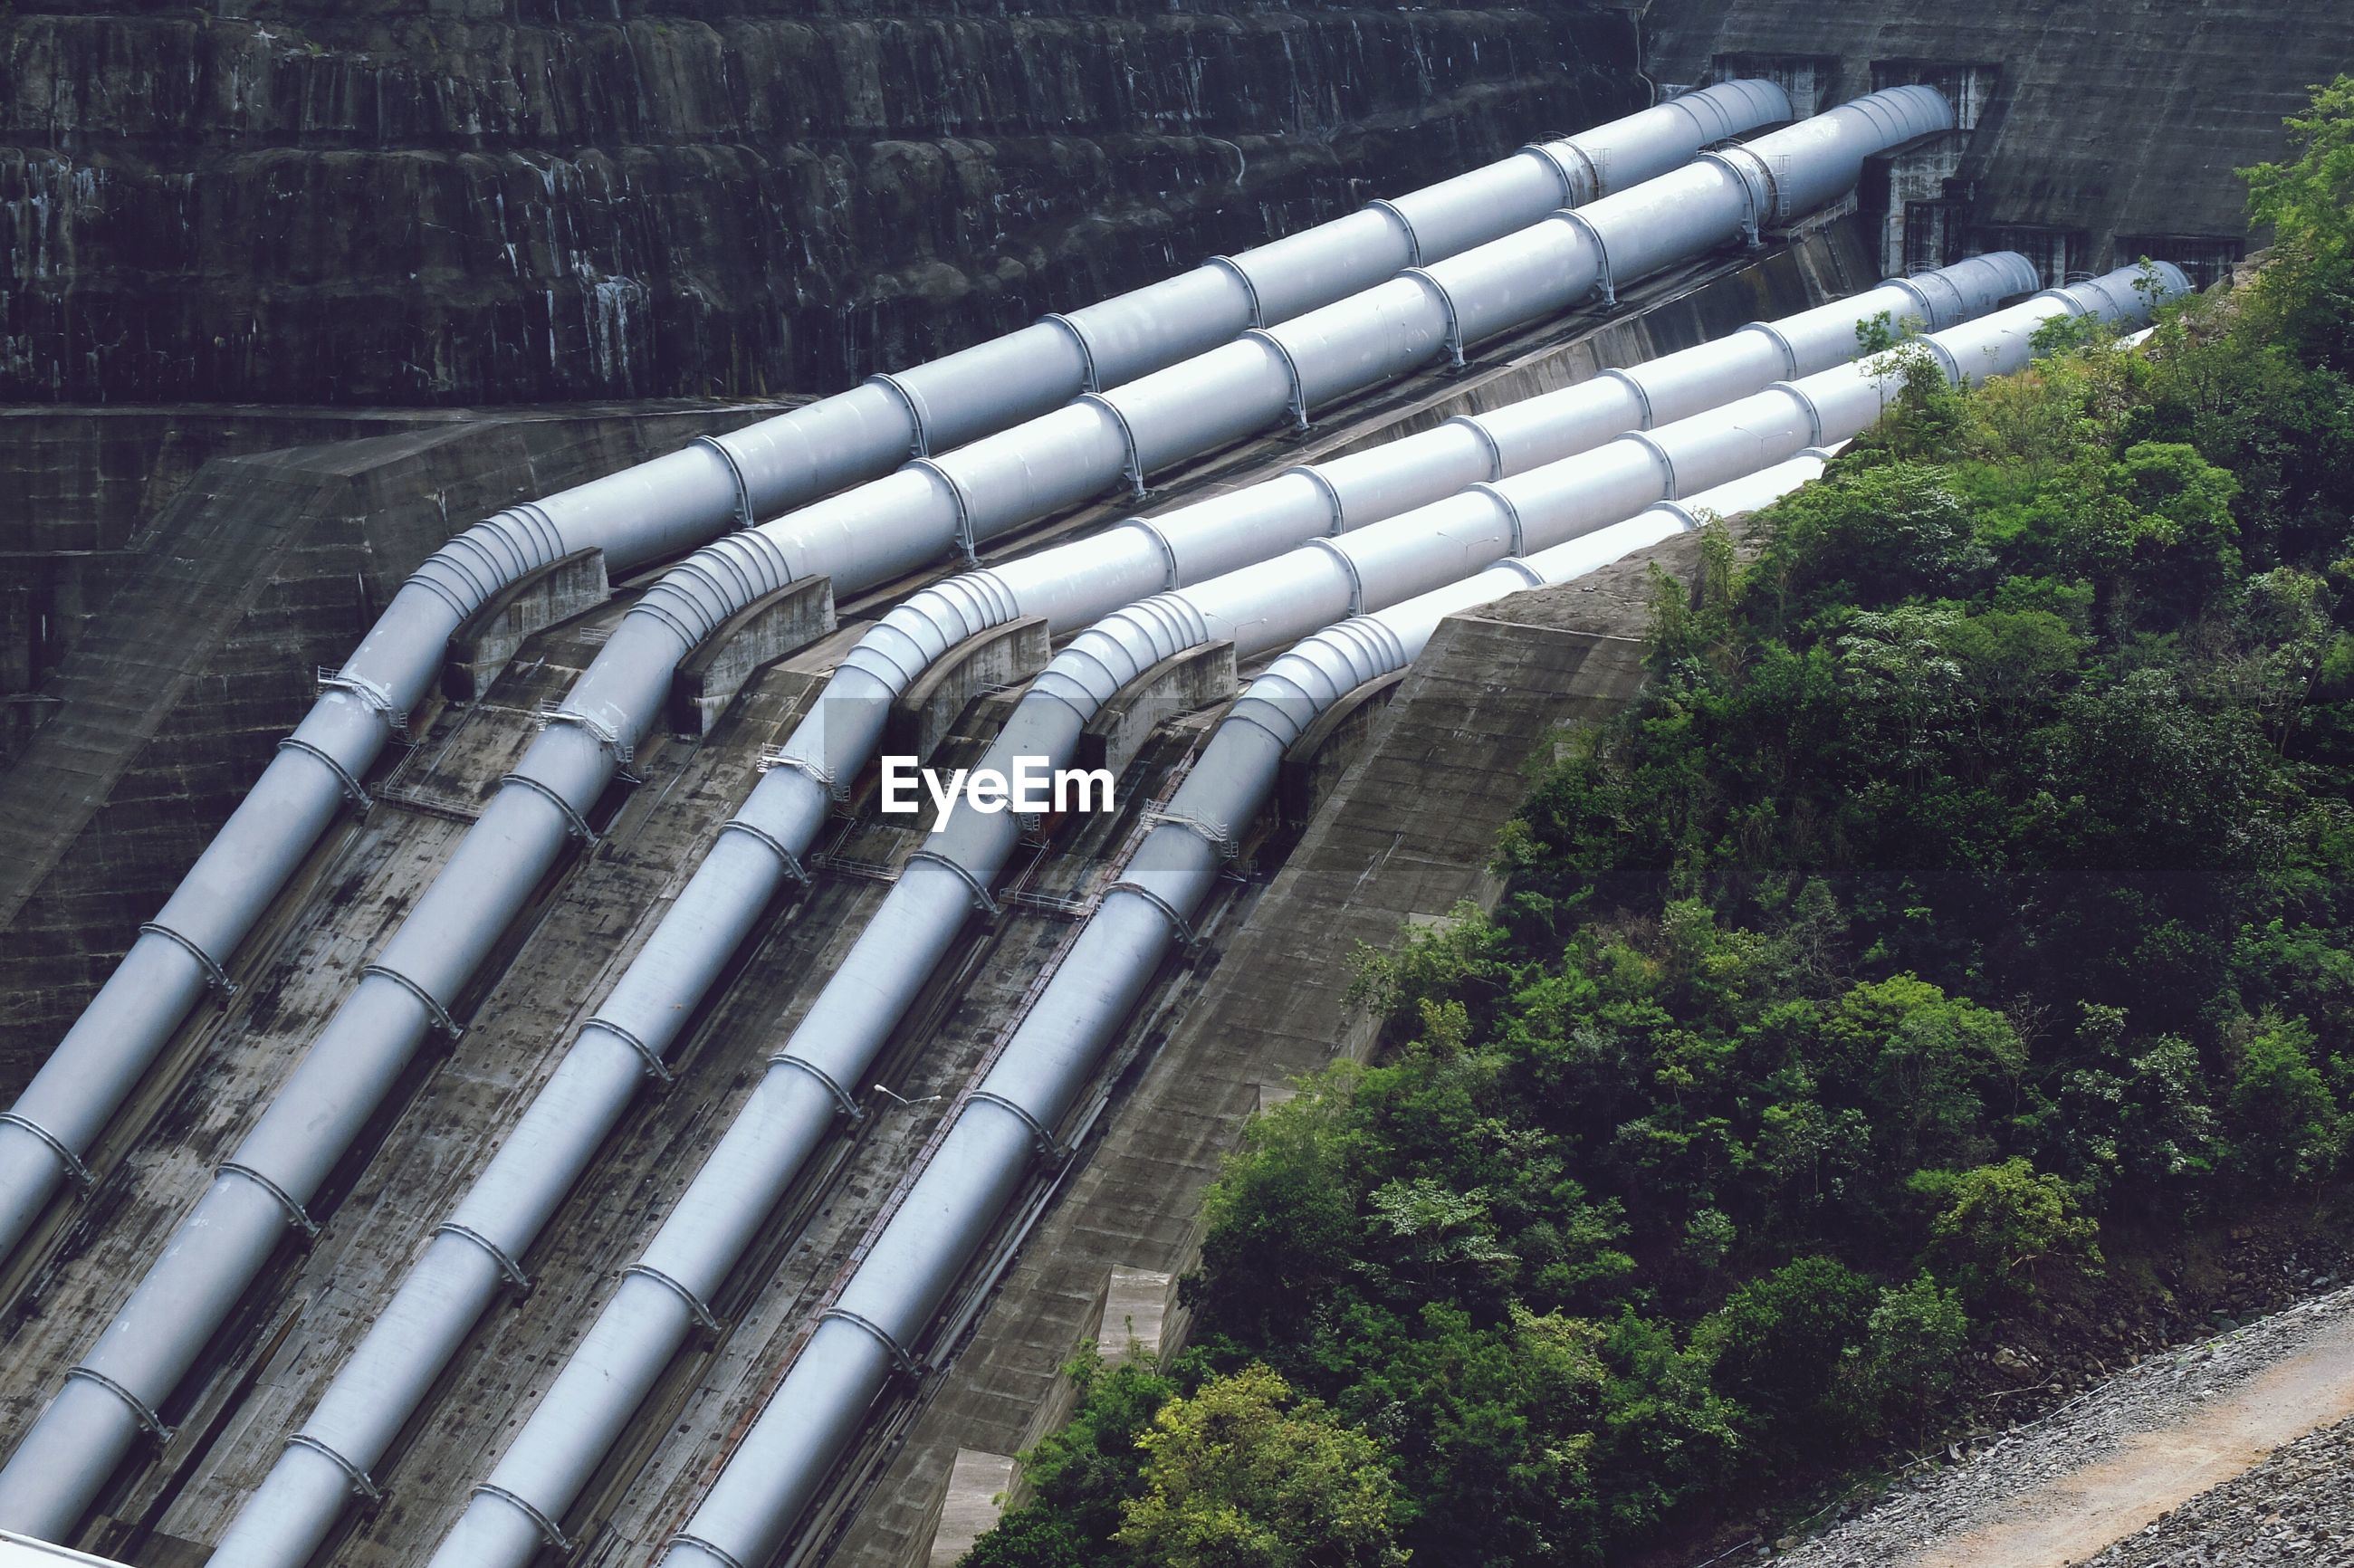 High angle view of pipelines at factory